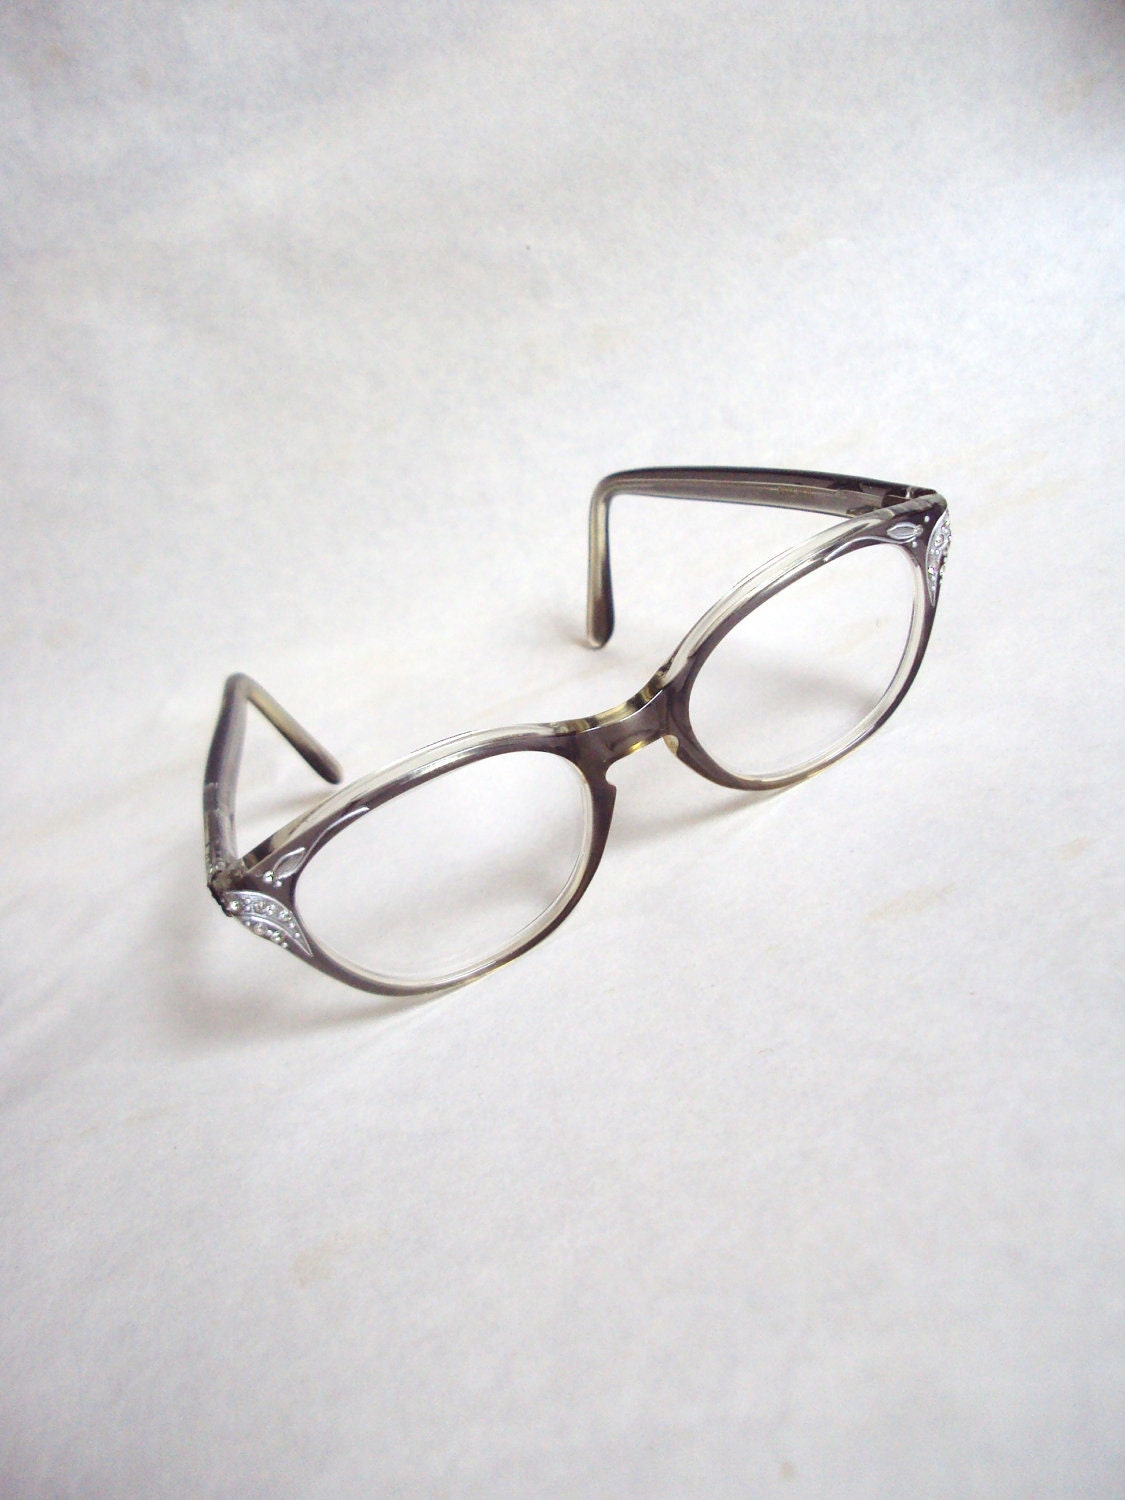 1950s 60s Grey & silver rhinestone spectacles - Veramode